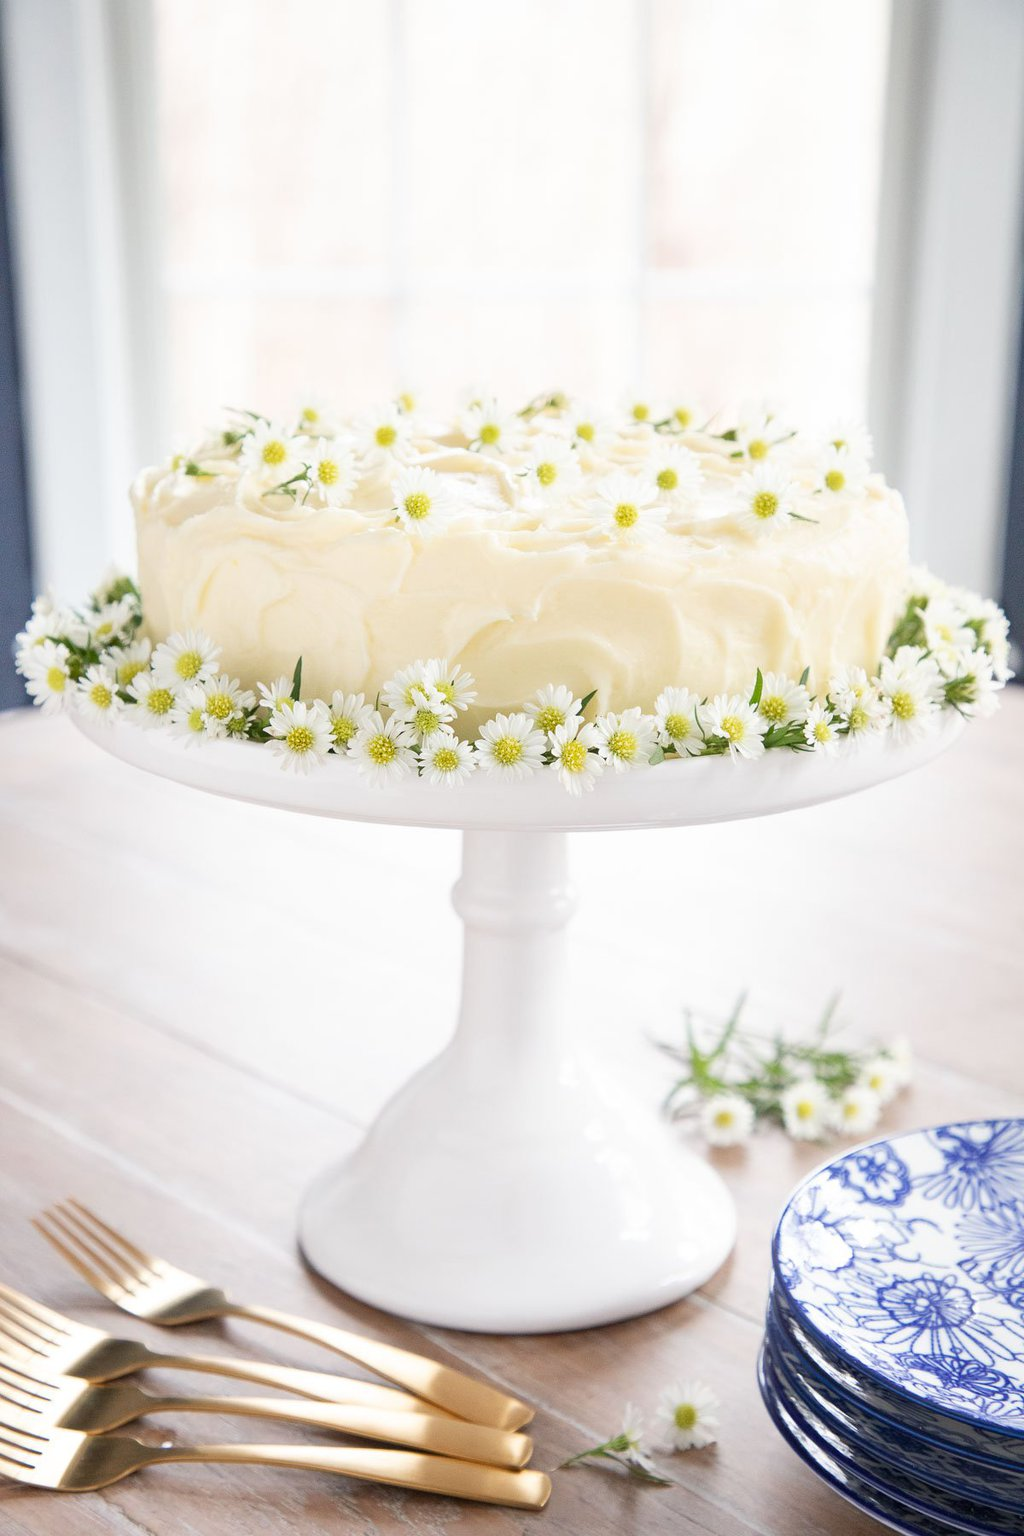 Over all photo of a Lemon Curd Poppy Seed Cake on a white pedestal cake stand decorated with edible flowers.